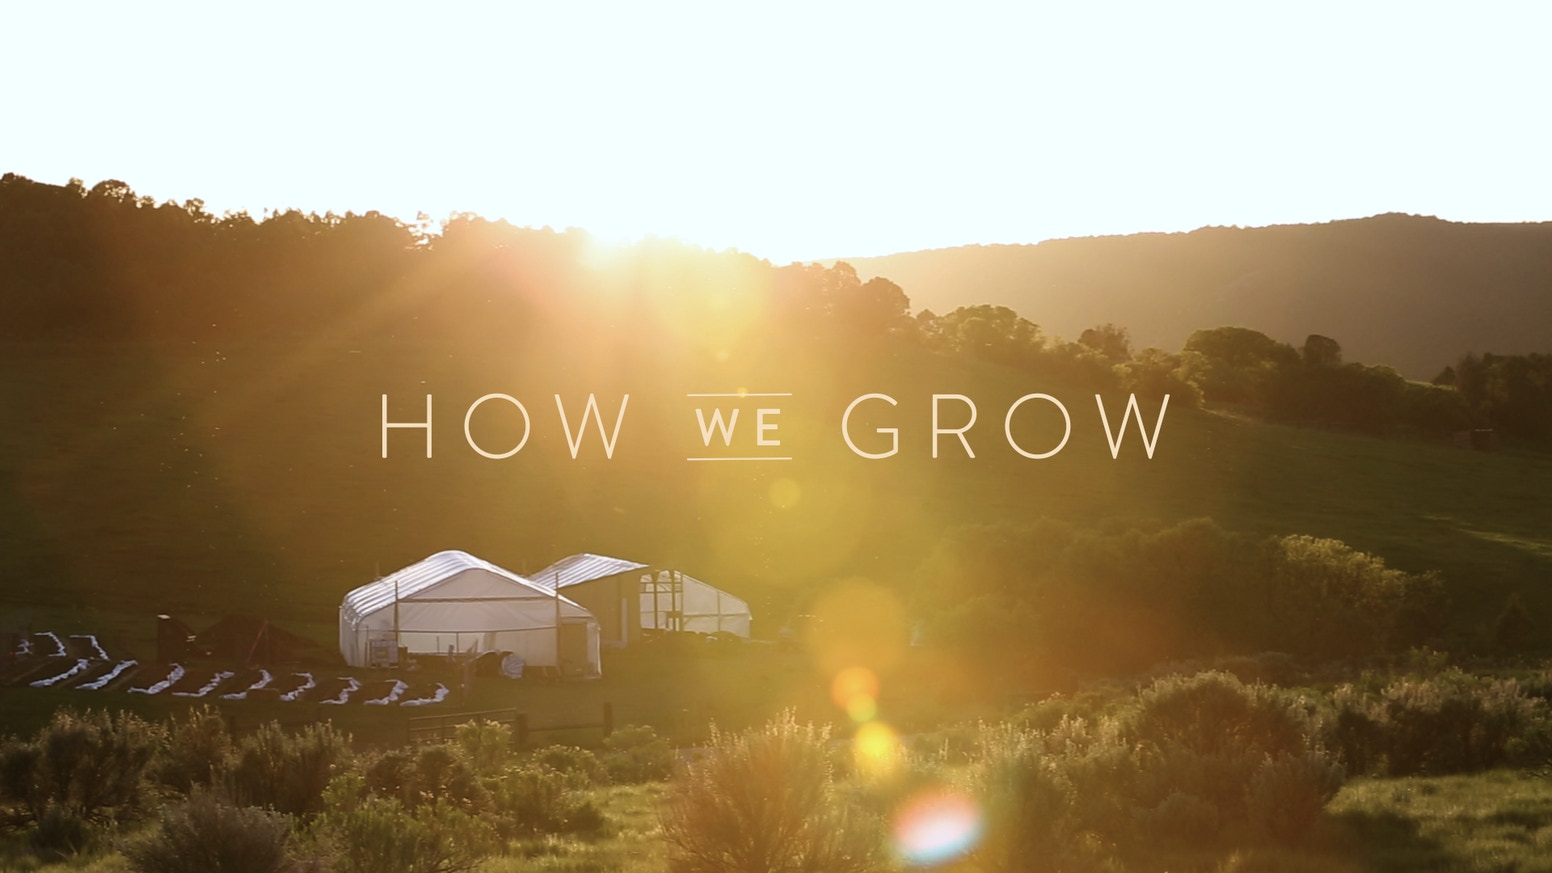 Thank you to our Kickstarter community for helping us finish this impactful film. HOW WE GROW is about community and was supported by our community.